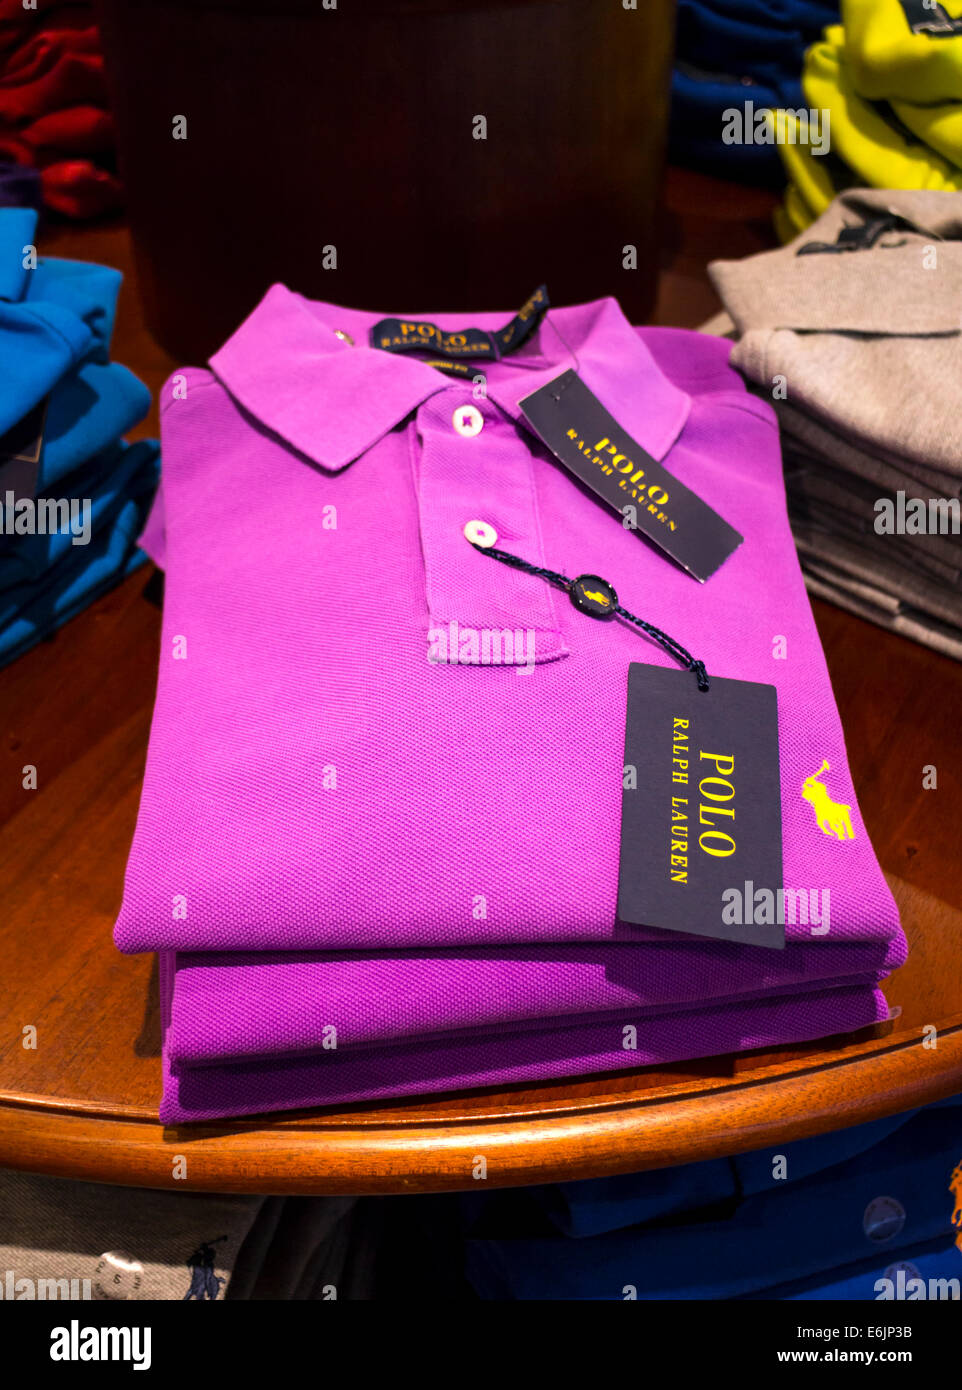 Ralph Lauren Polo Shirts on display - Stock Image